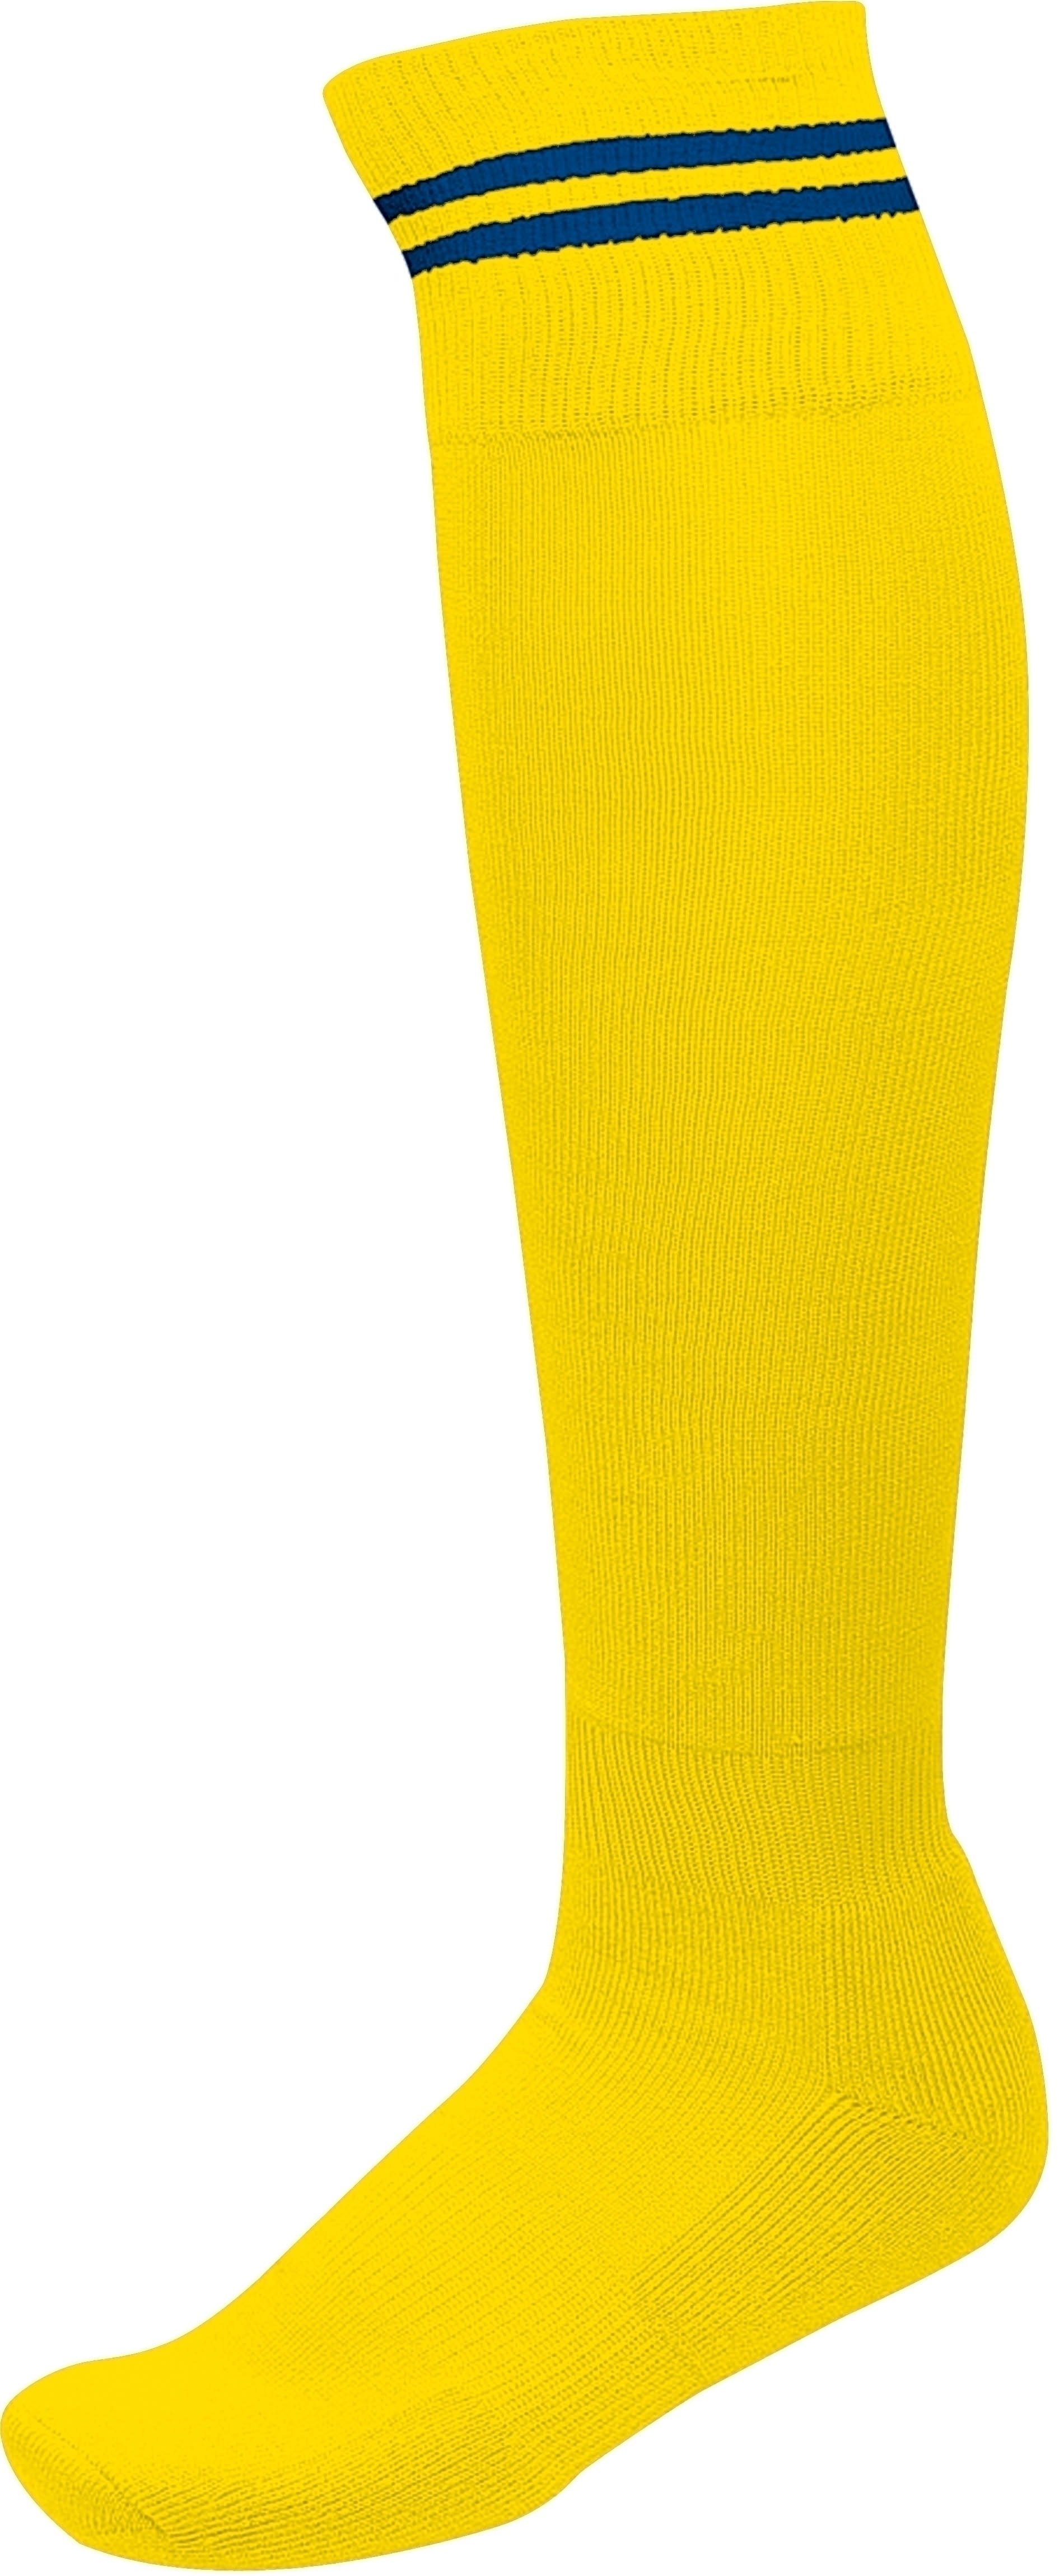 CHAUSSETTES DE SPORT RAYÉES Sporty Yellow / Dark Royal Blue Jaune